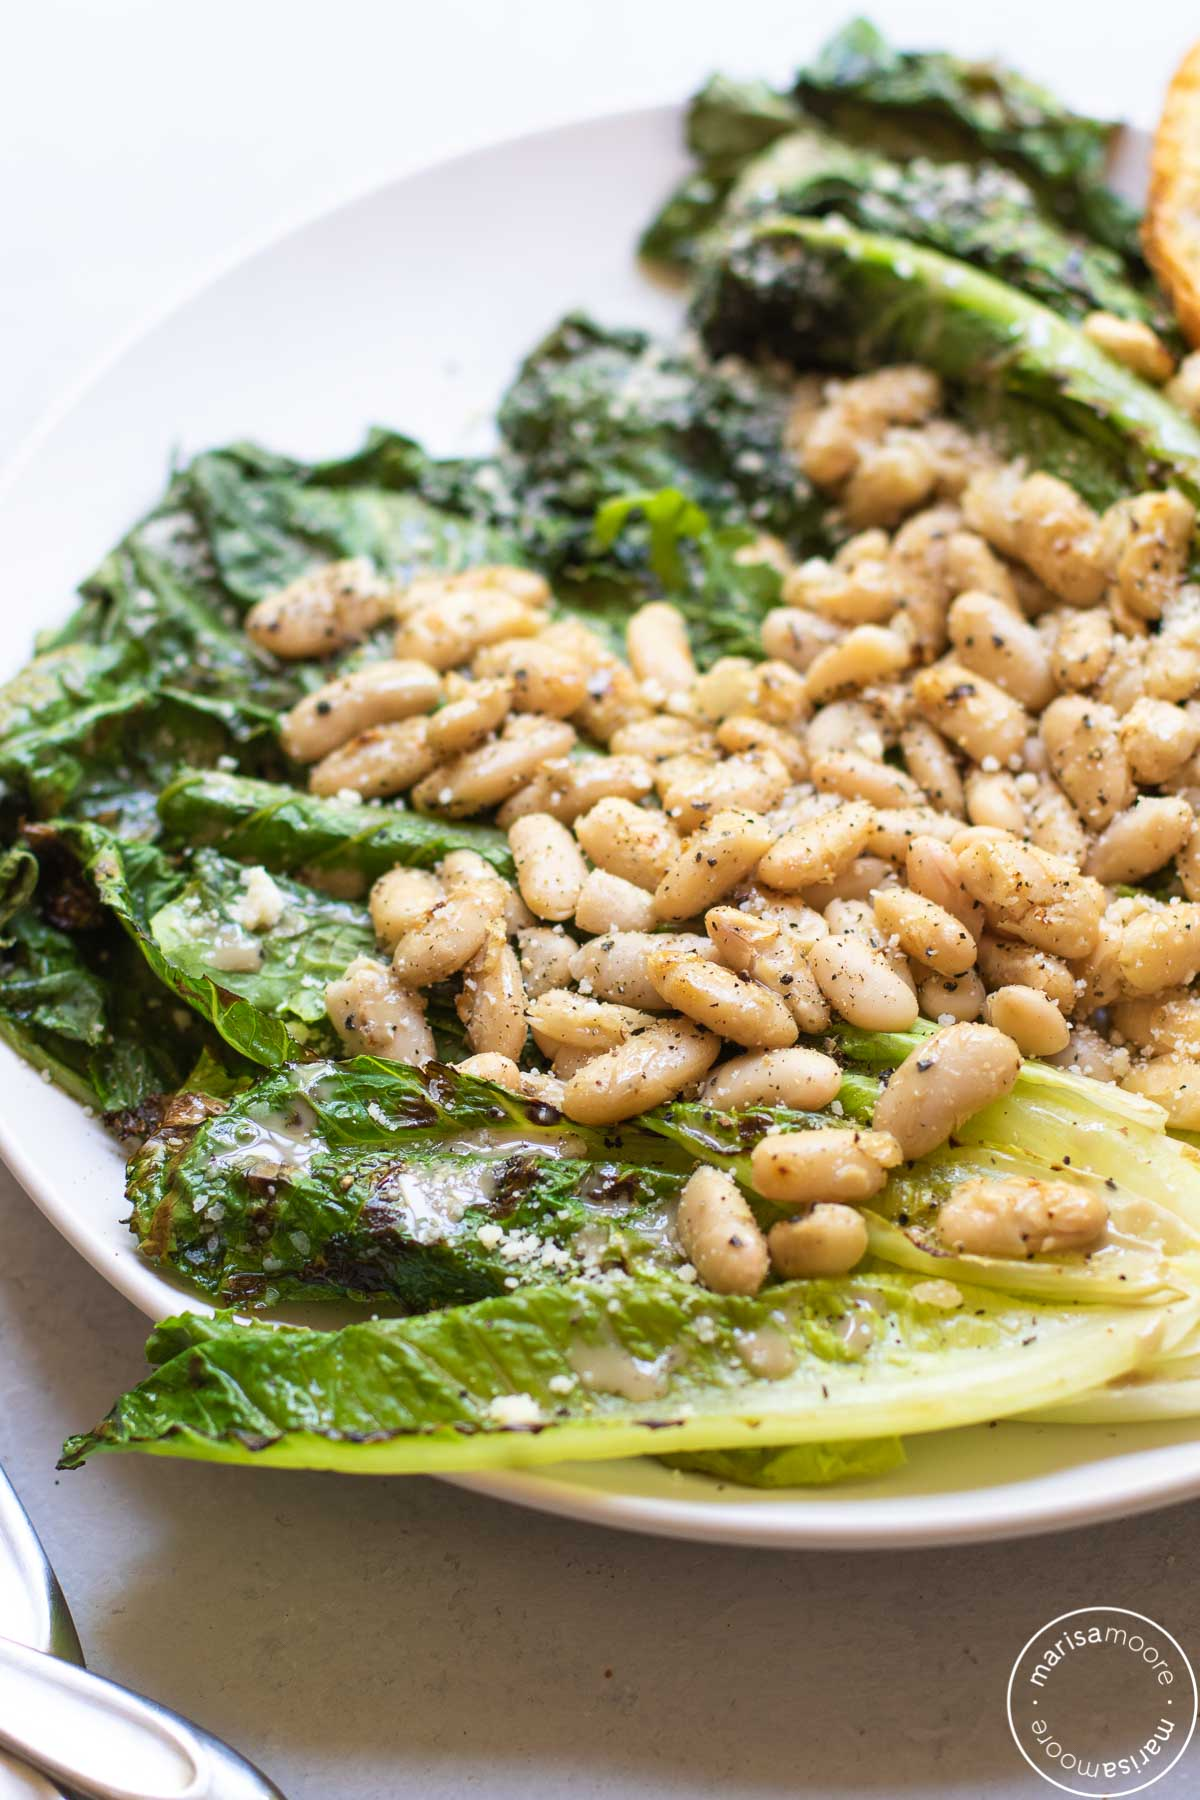 Whole leaves grilled lettuce with white beans on top on a white plate